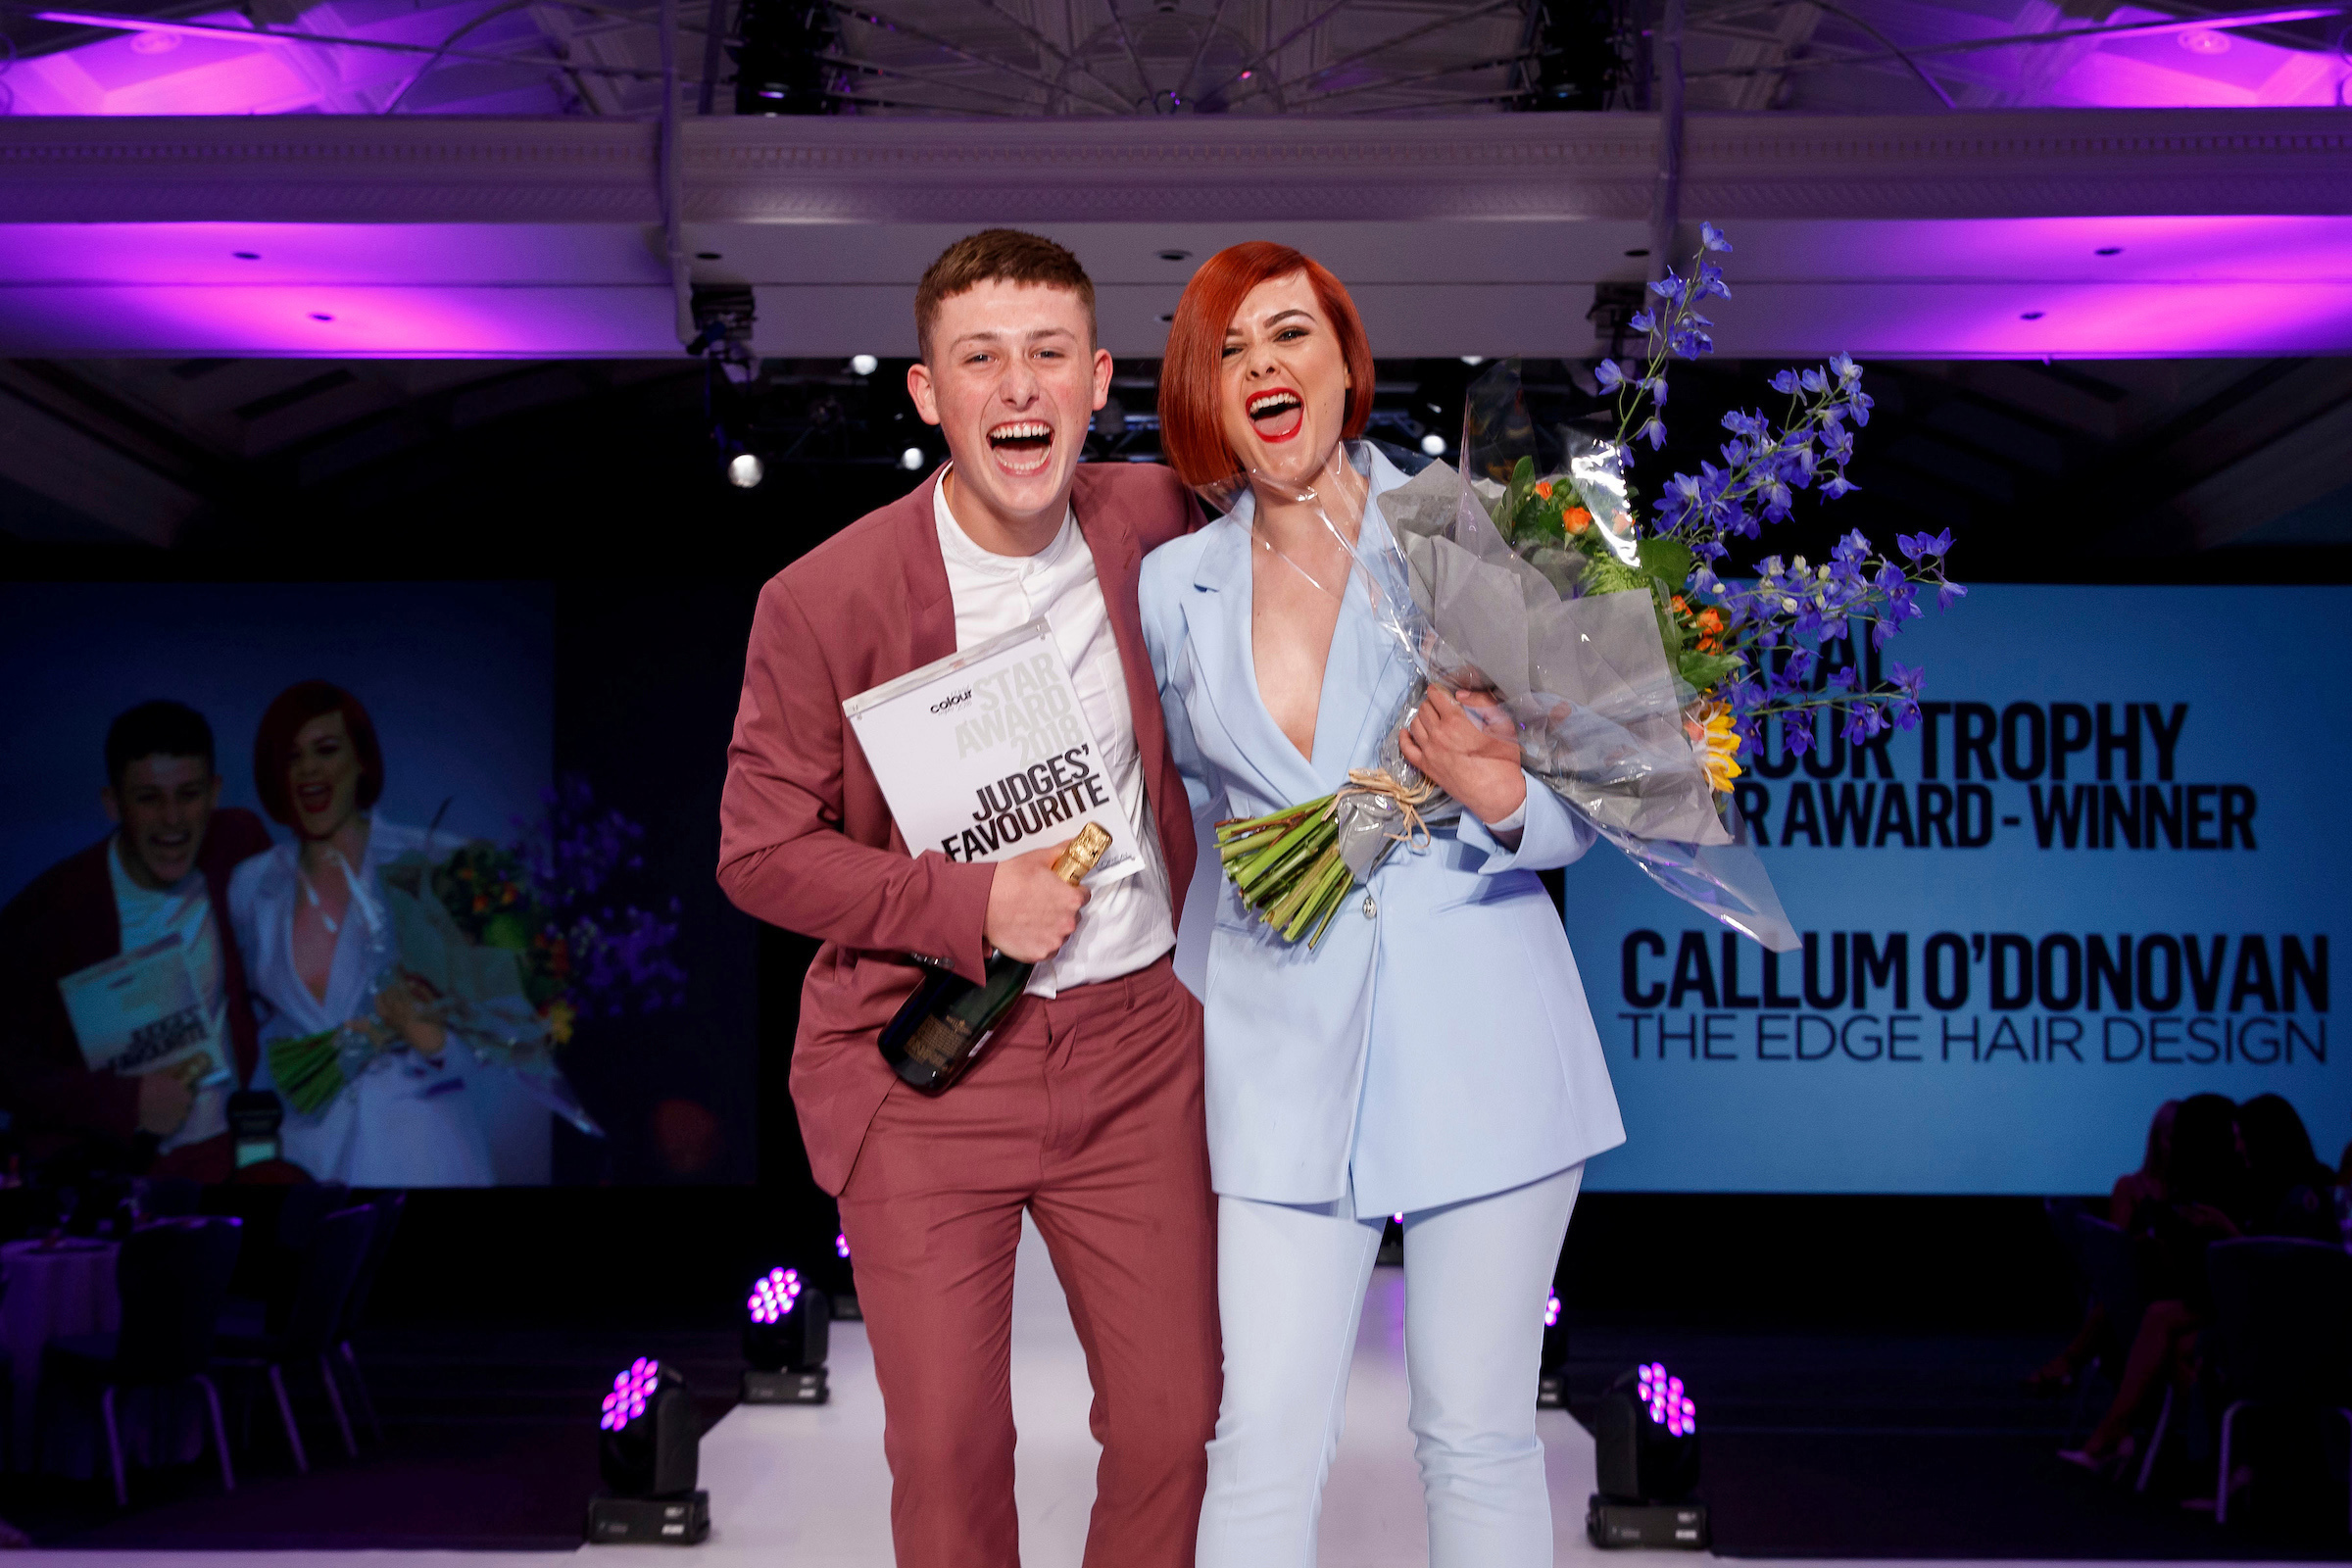 Repro Free: 02/07/2018  Callum O'Donovan of The Edge Hair Design, Cork winner of the L'OrÈal Colour Trophy STAR Award pictured with model Doireann Murphyl at the L'OrÈal Colour Trophy Grand Final 2018 at the Clayton Hotel Dublin.  For further information please contact marioleary@olearypr.ie   01-6789888    Picture Andres Poveda Photography